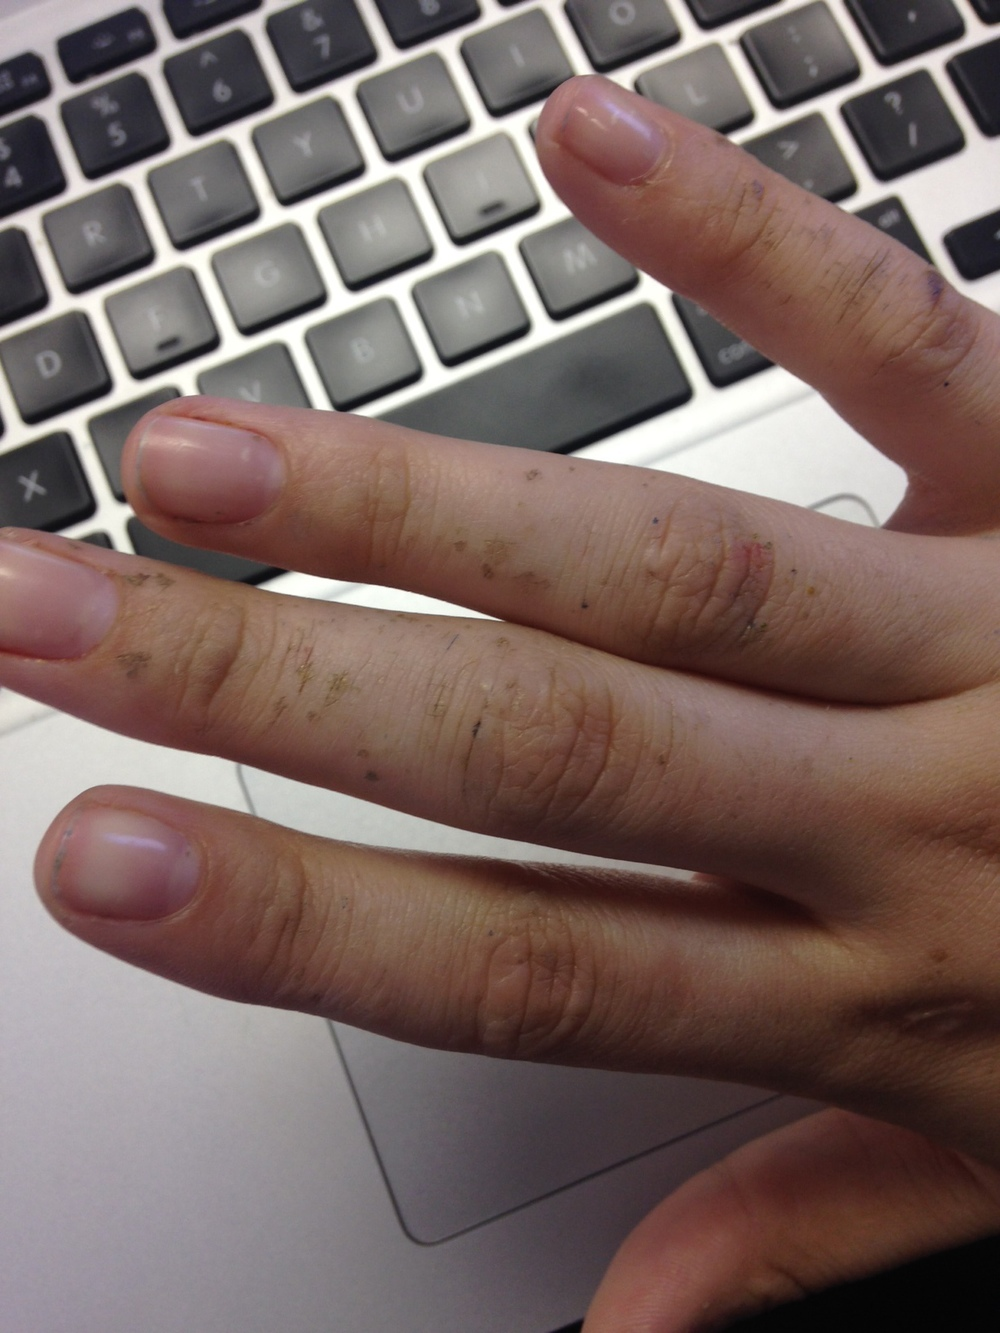 While I adore nail polish, I just can't seem to wear it. I work with a lot of white negative space, and having little red streaks from my nails touching the surface of my paper is endlessly infuriating.